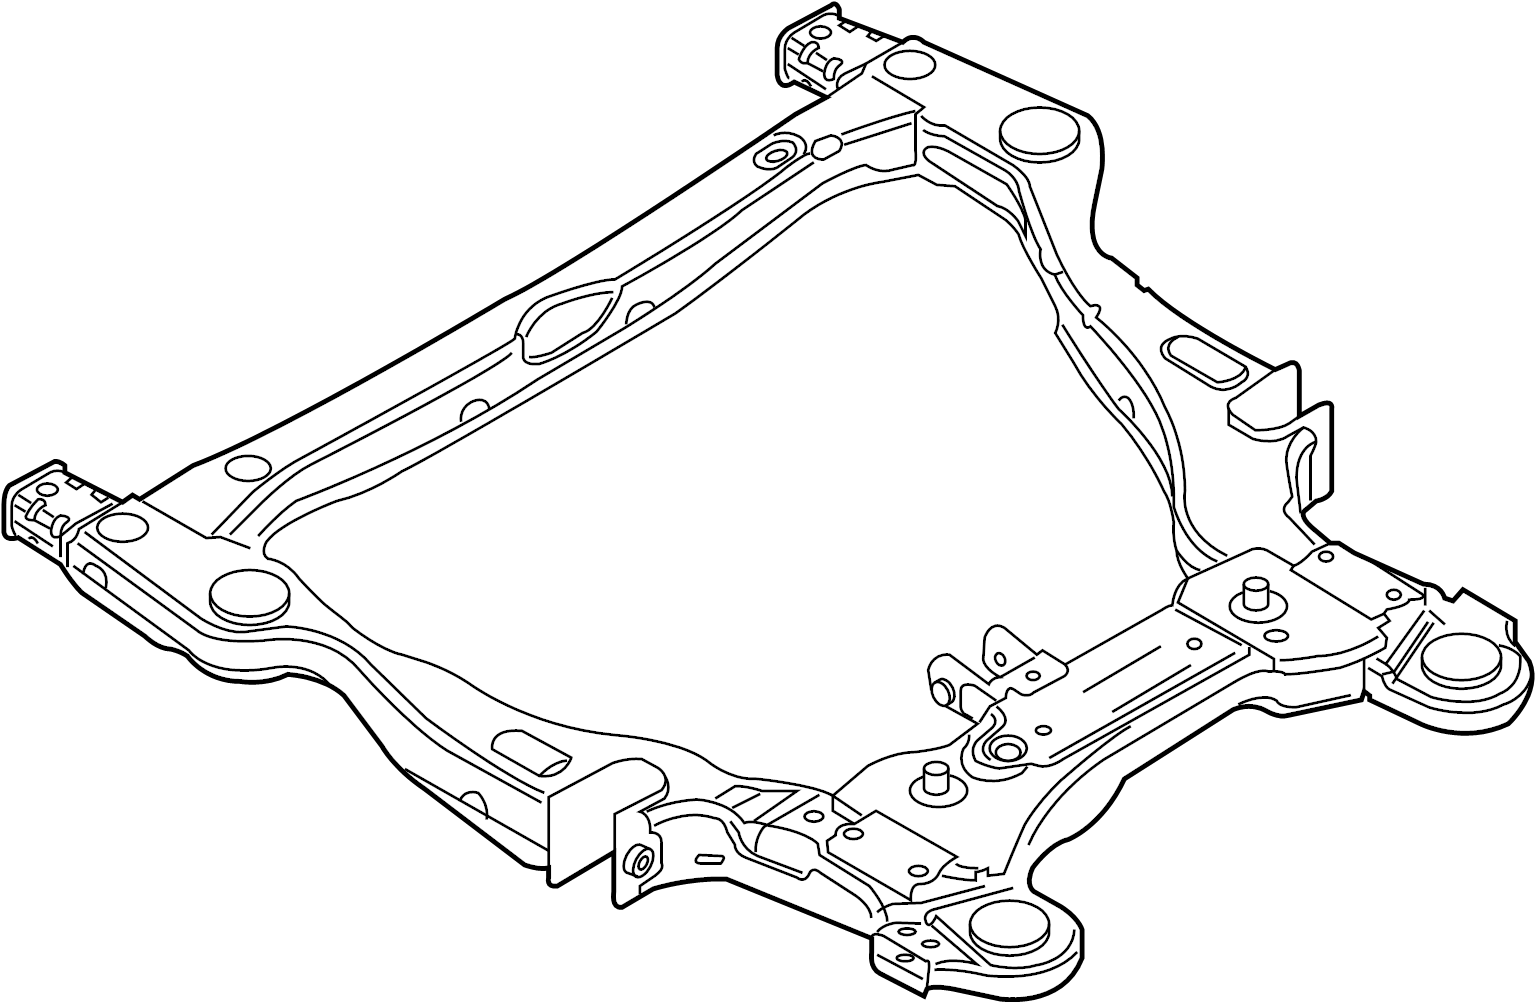 Ford Taurus Engine Cradle